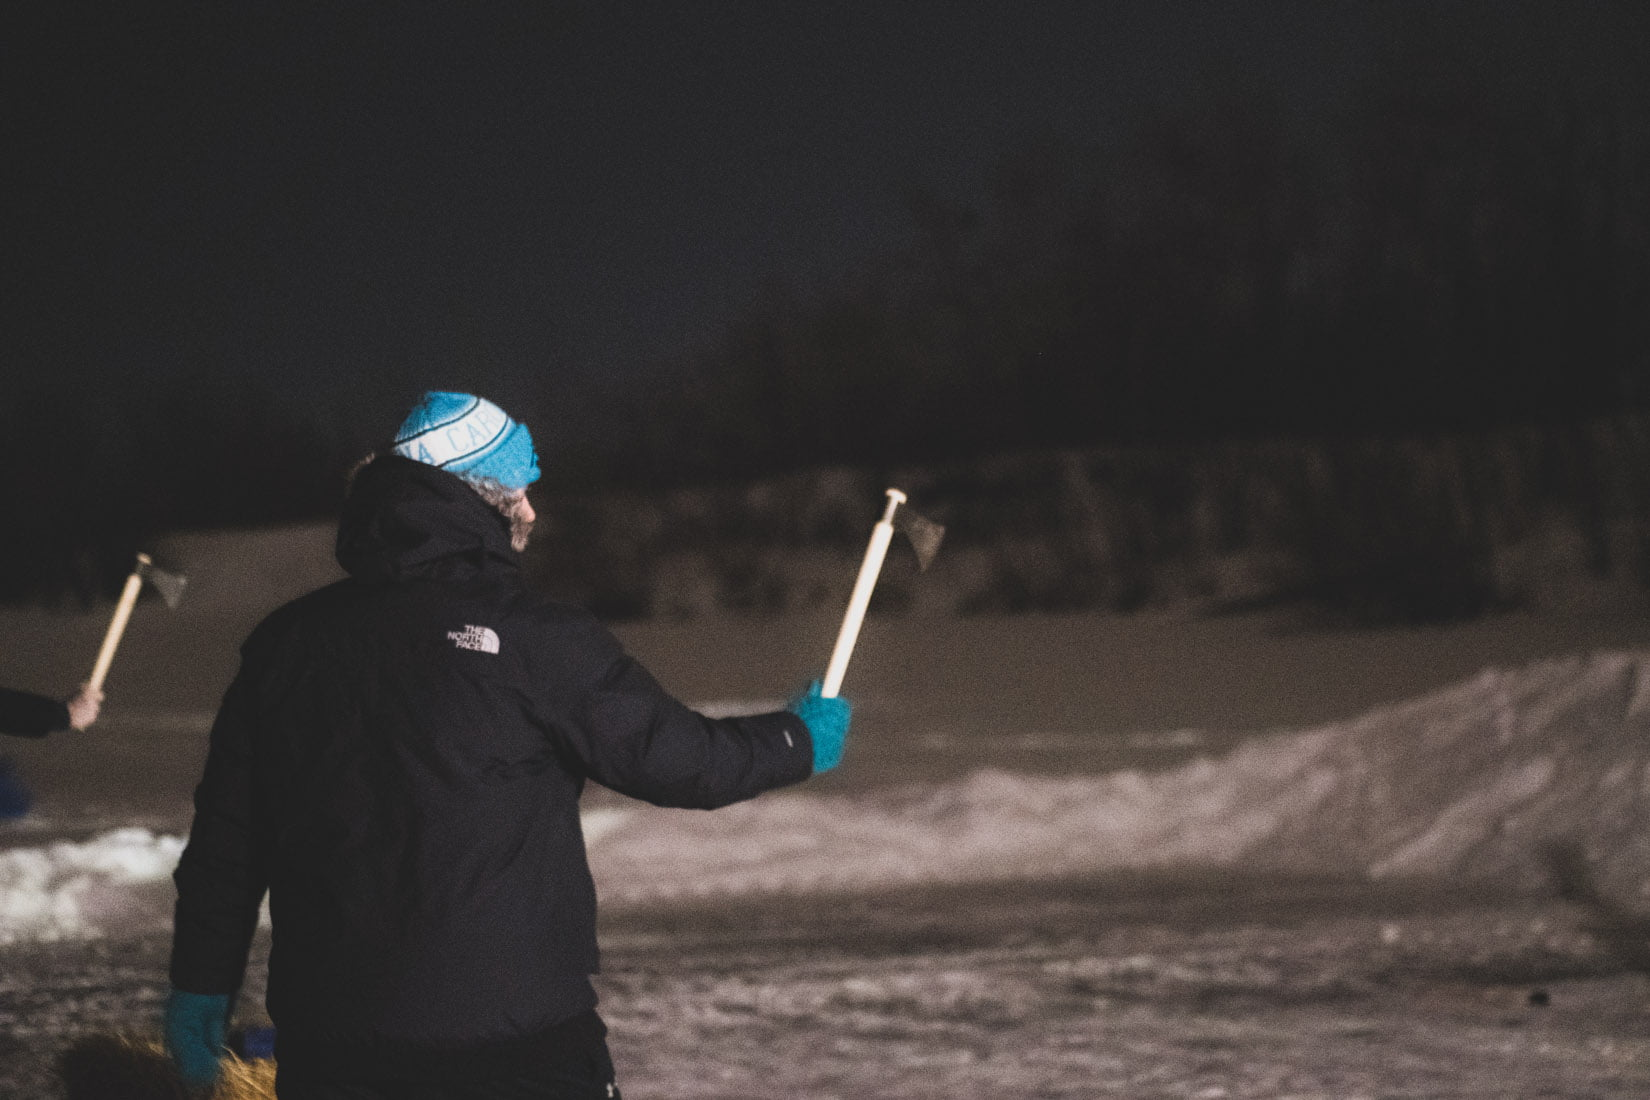 Hatchet throwing on the frozen lake